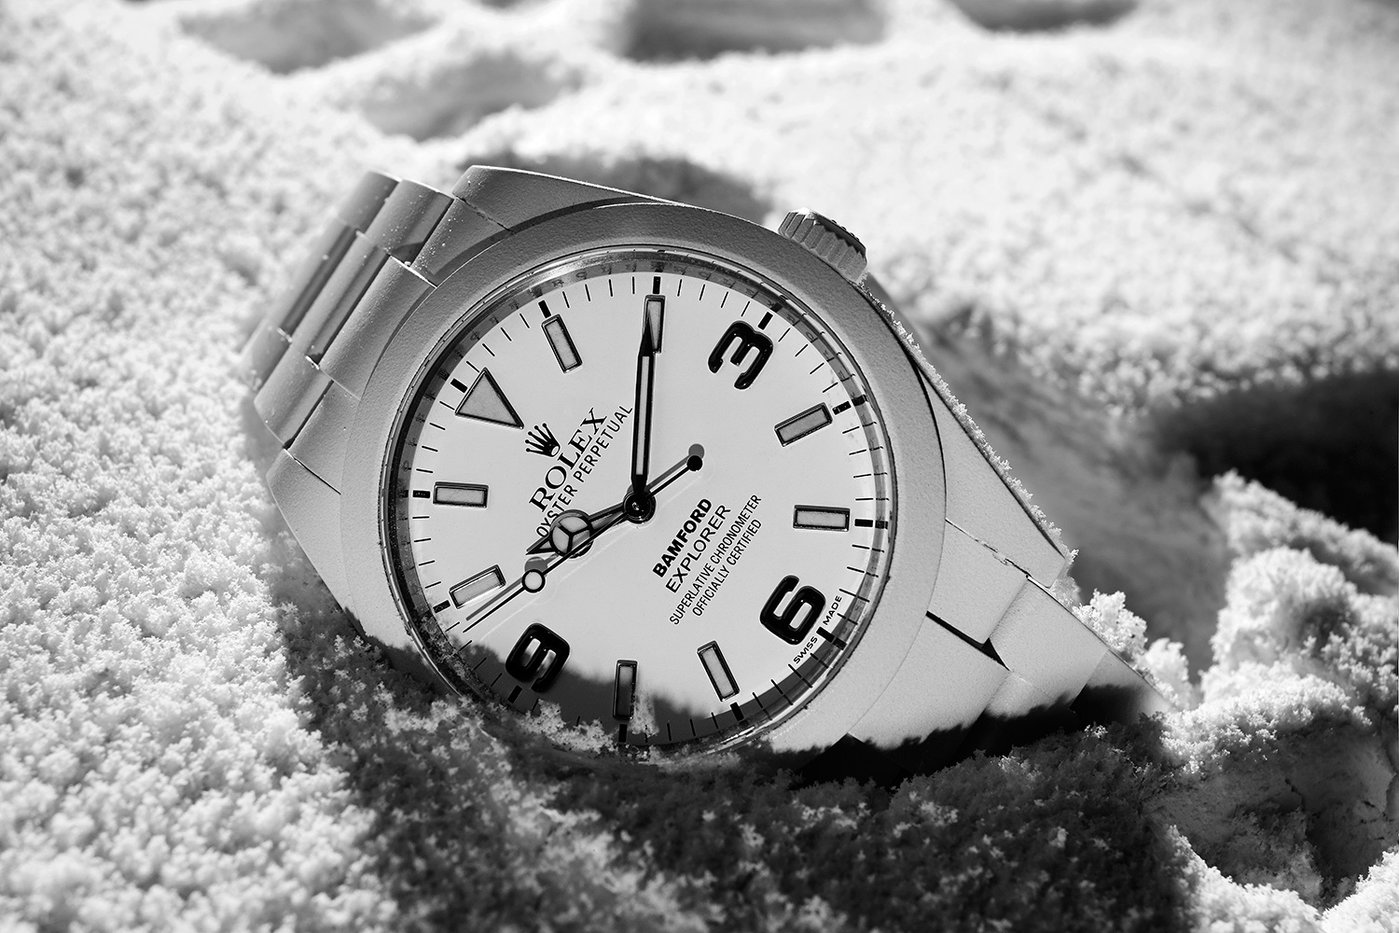 bamford-watch-department-polar-rolex-watches-02.jpg